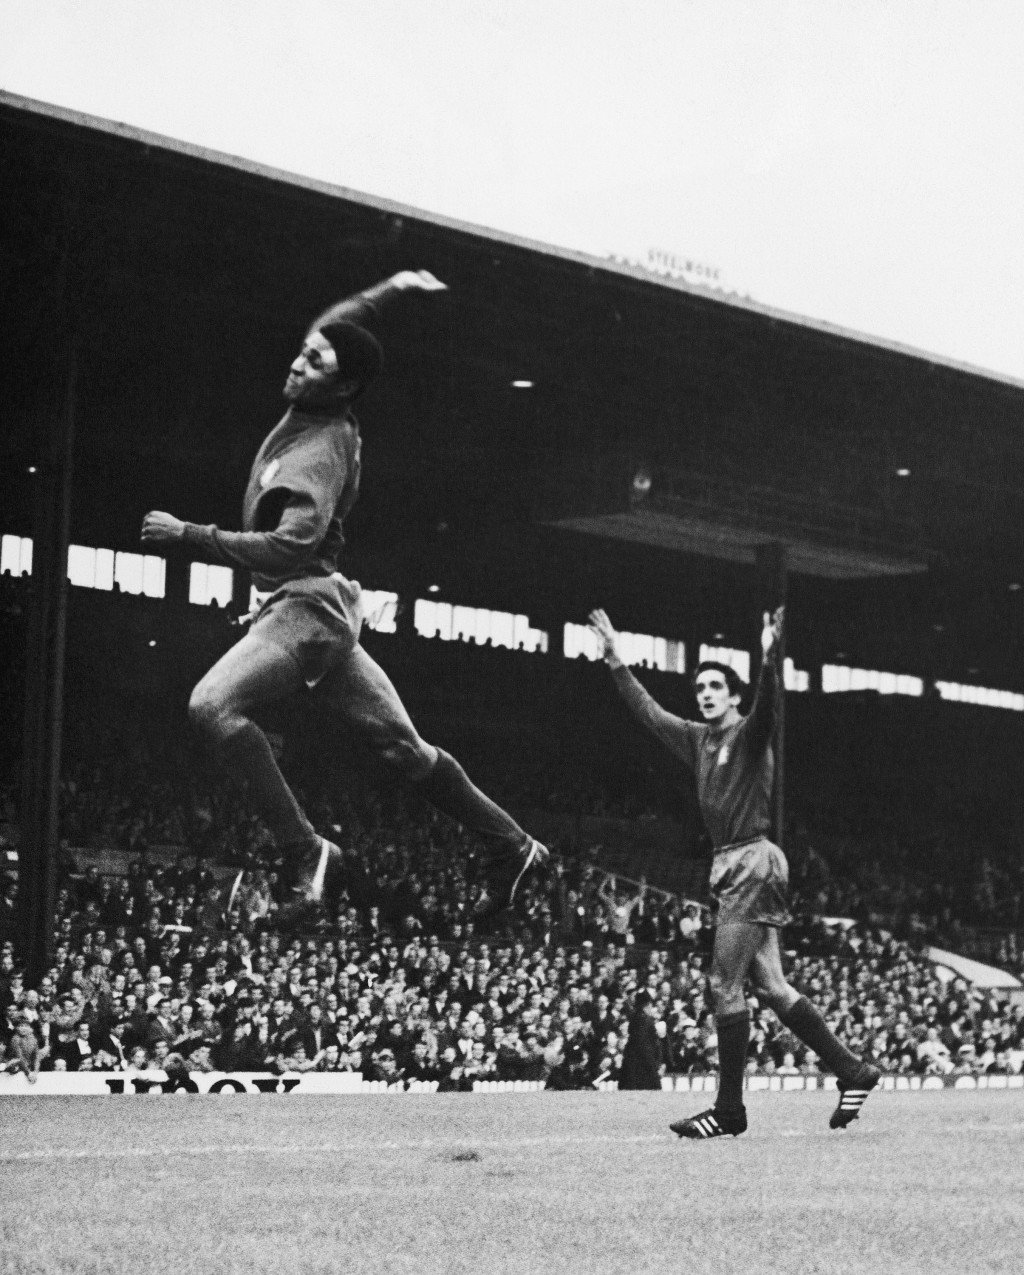 FILE - In this July 16, 1966 file photo, Eusebio jumps high after scoring Portugal's second goal in their World Cup soccer match against Bulgaria in M